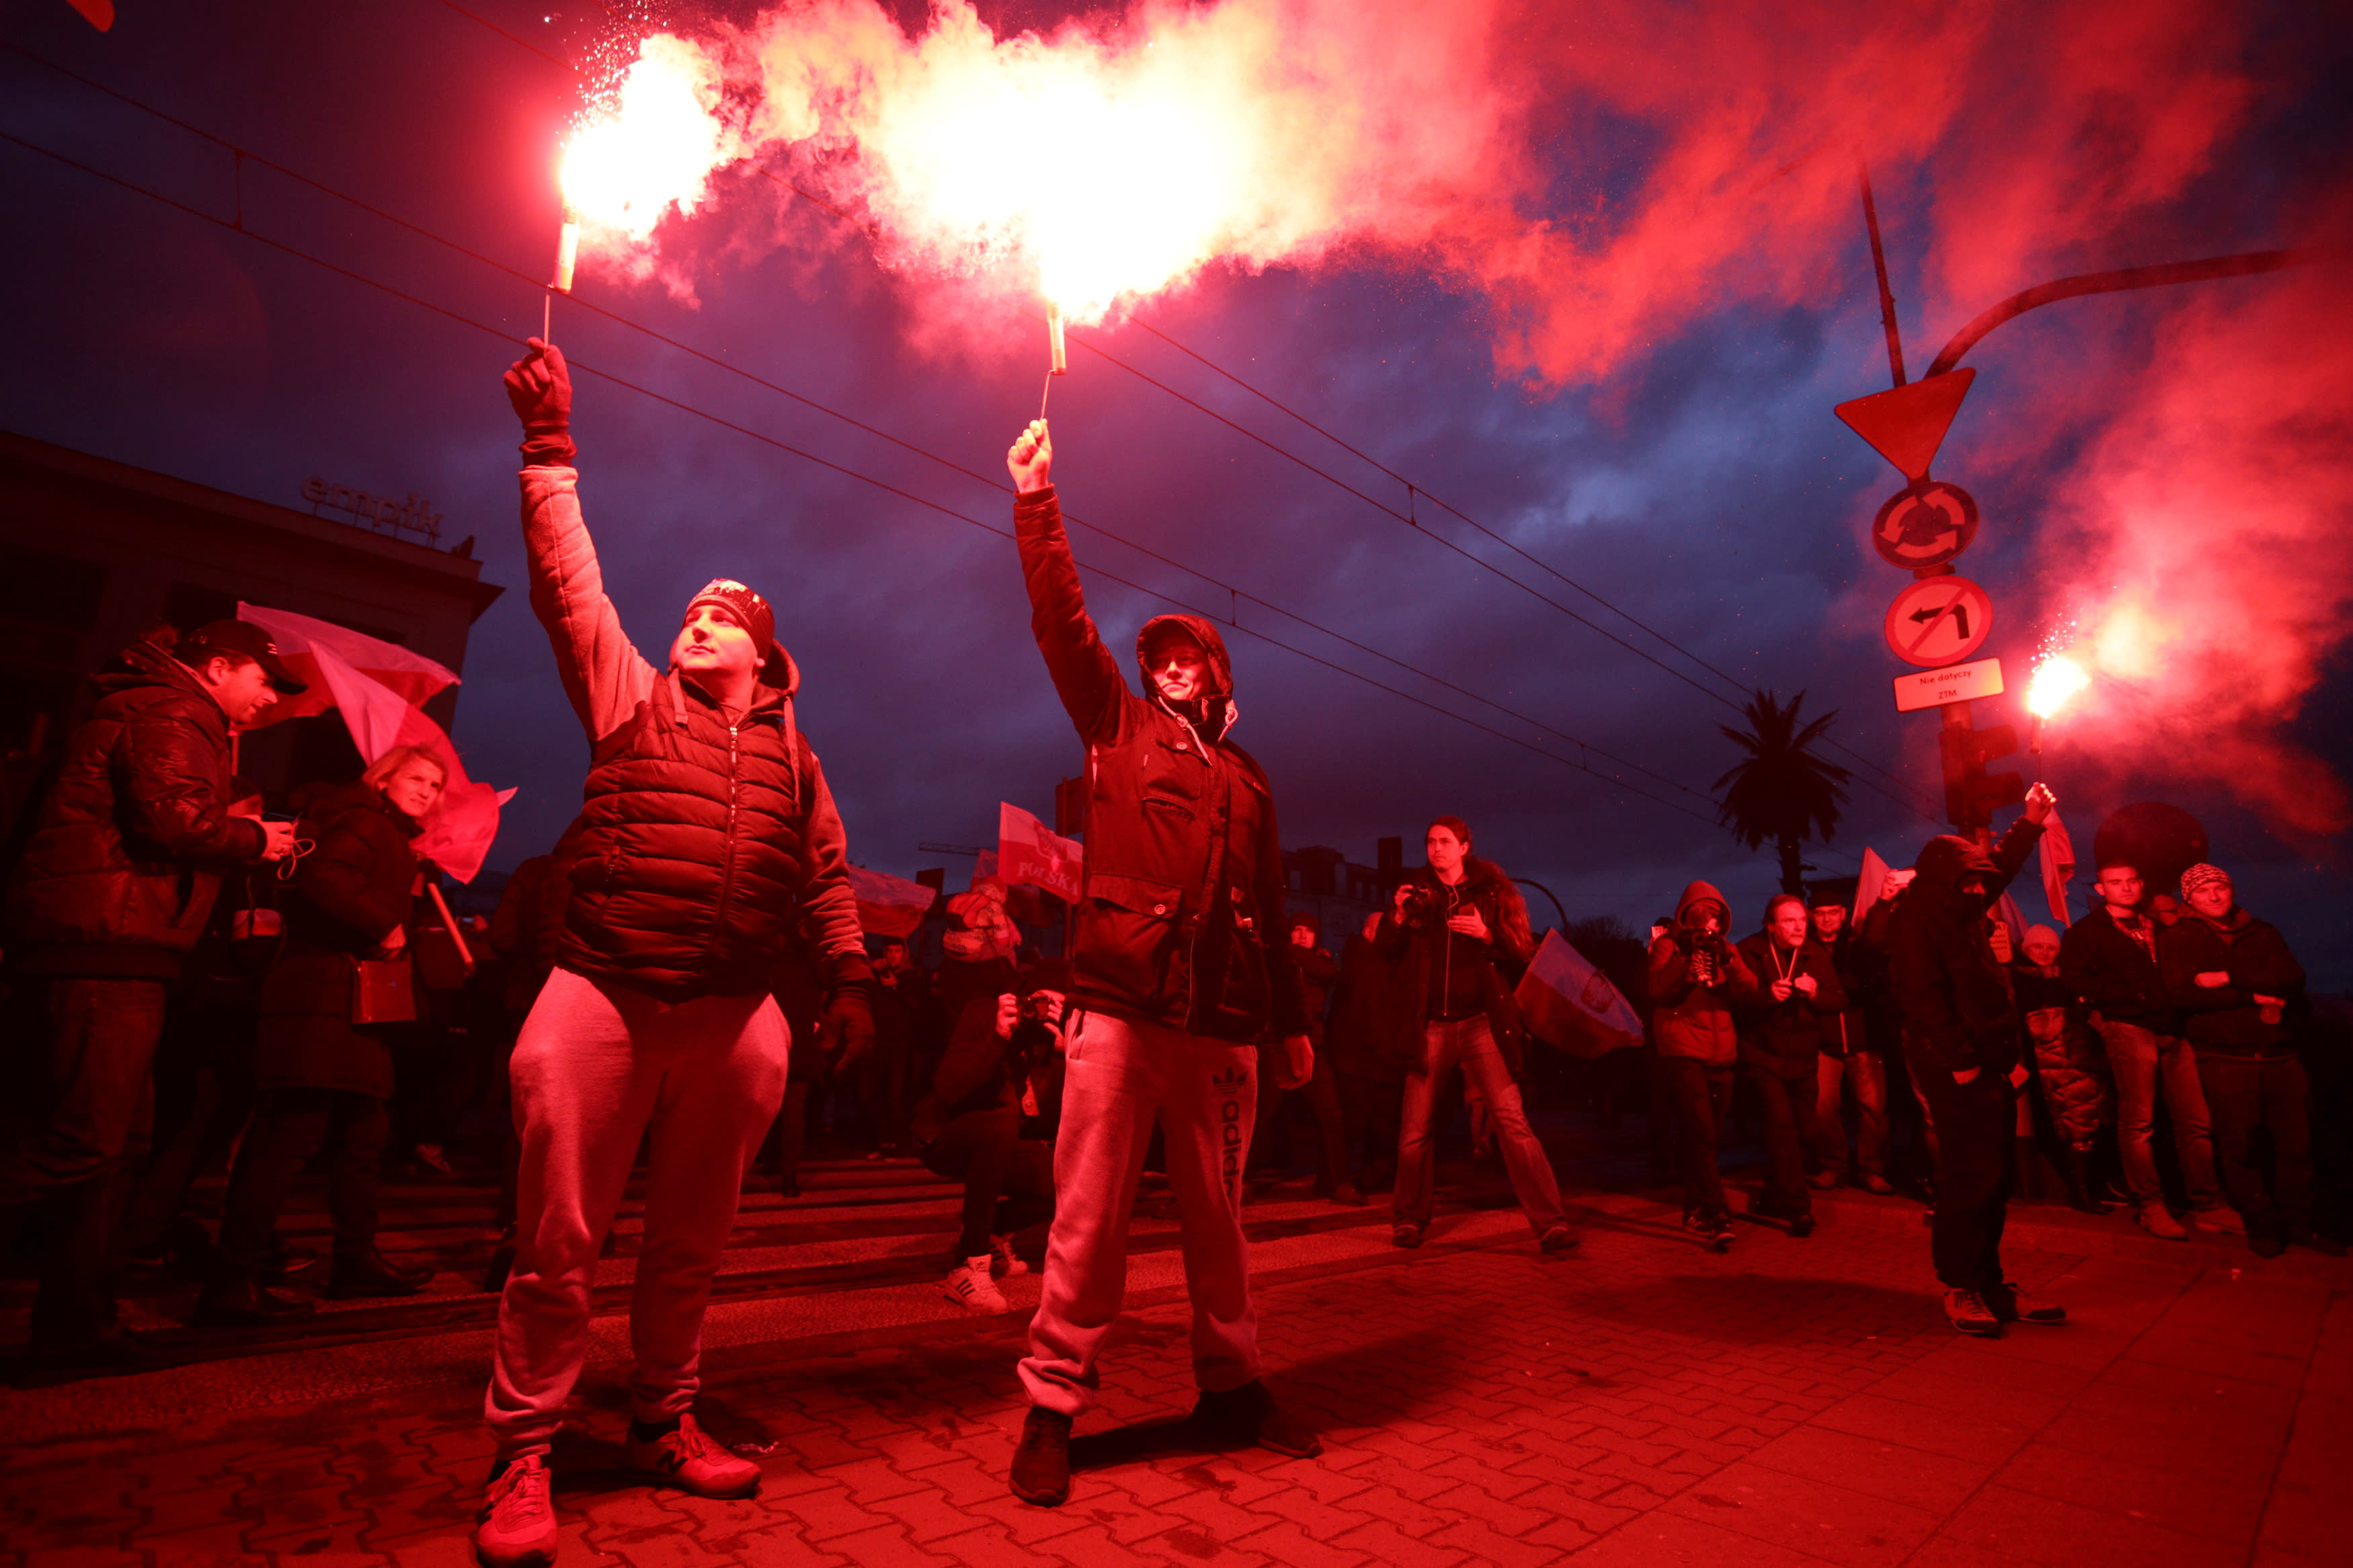 Demonstrators burn flares and wave Polish flags during Poland's Independence Day in Warsaw (AGENCJA GAZETA/ADAM STEPIEN VIA REUTERS)